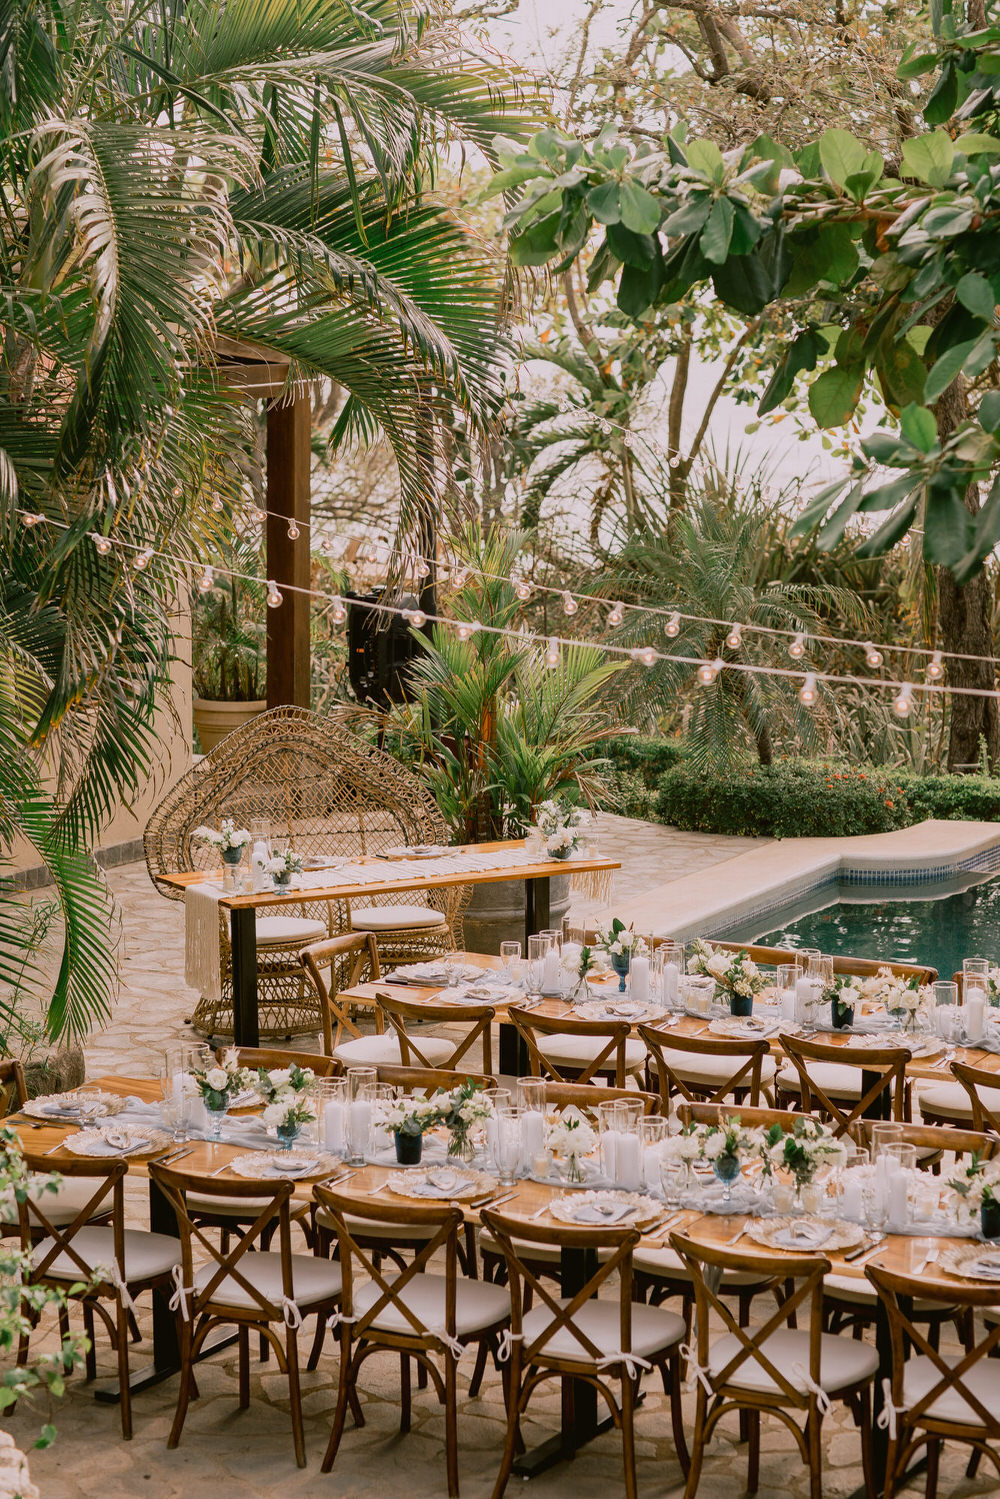 wedding reception decor with market lights by a pool